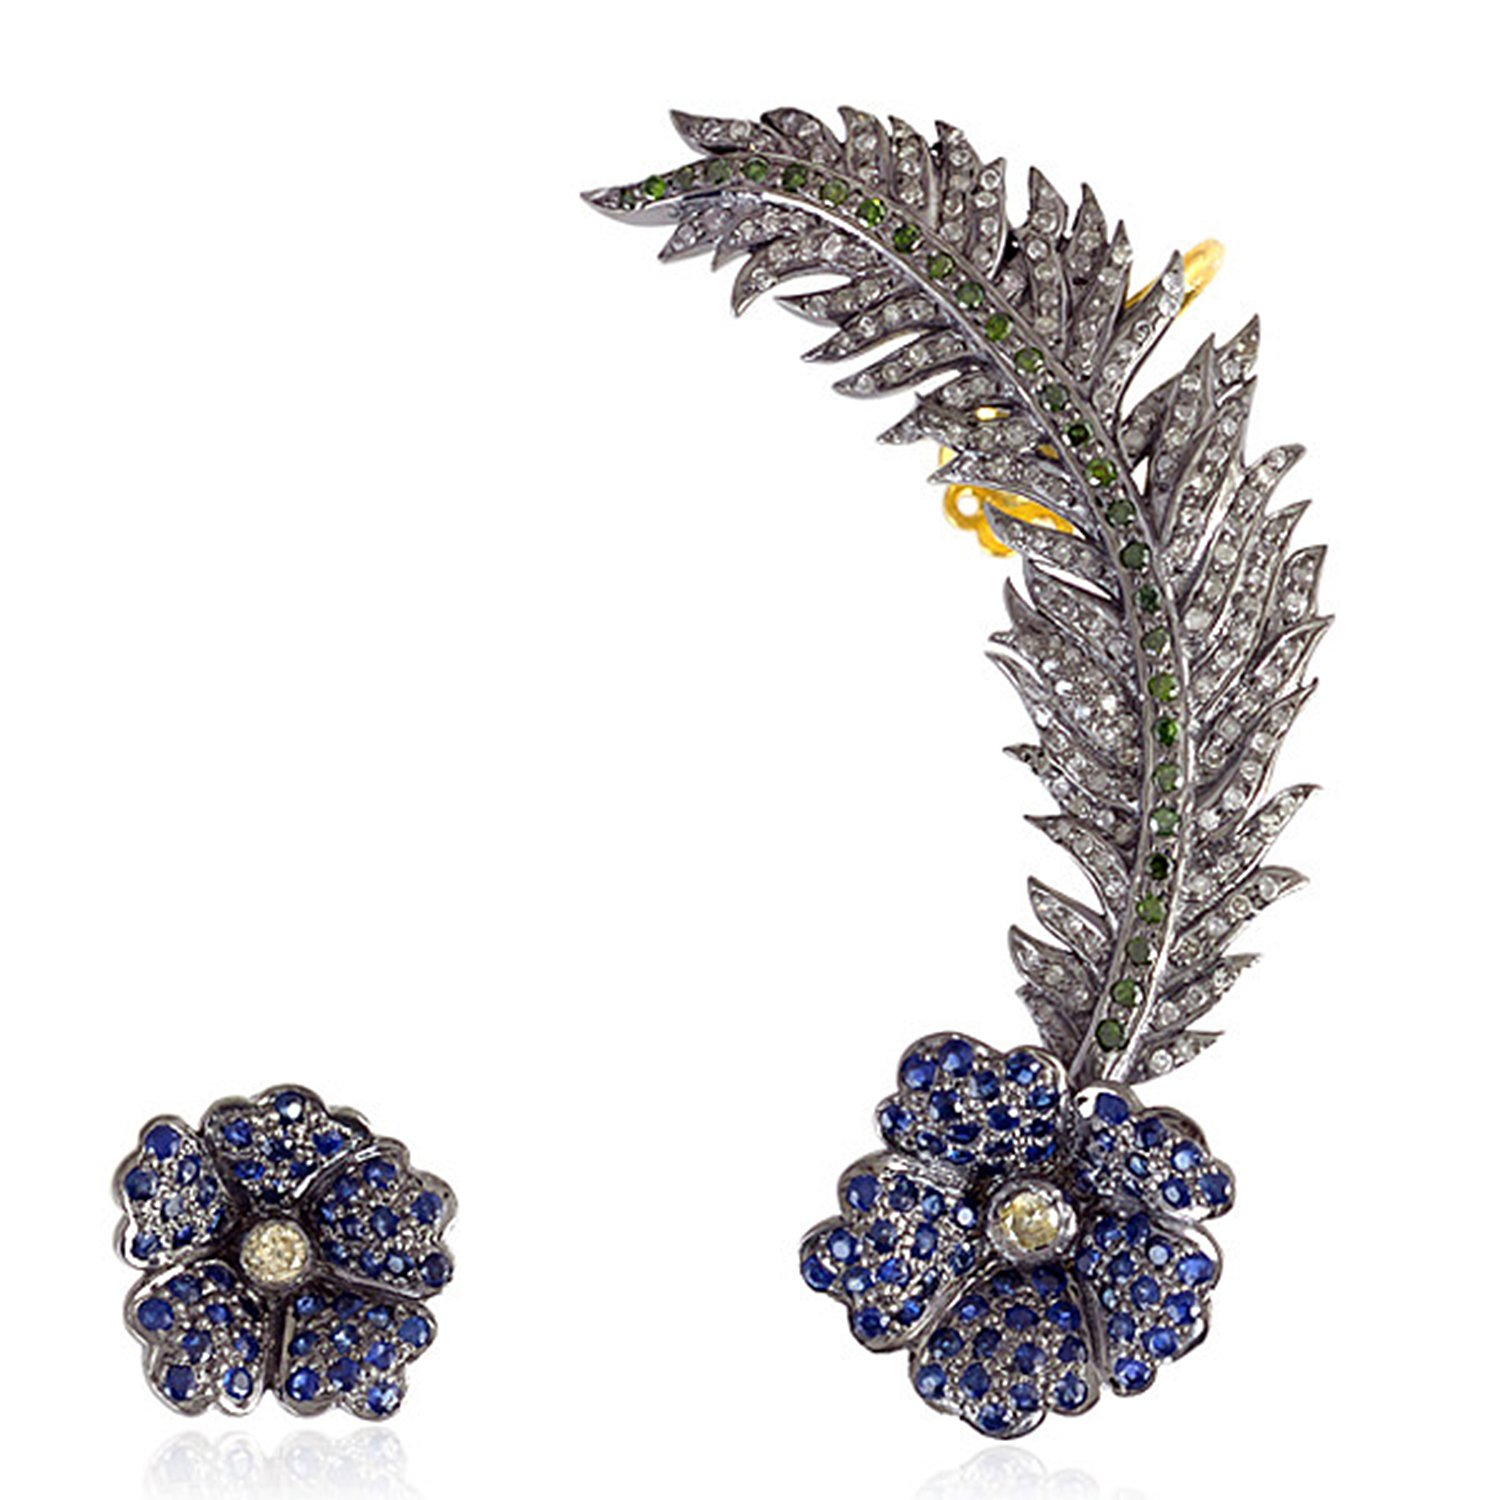 Blue Sapphire & Diamond Floral Leaf Style Ear Crawler Climber Cuff Earrings in 18K Gold & Sterling Silver